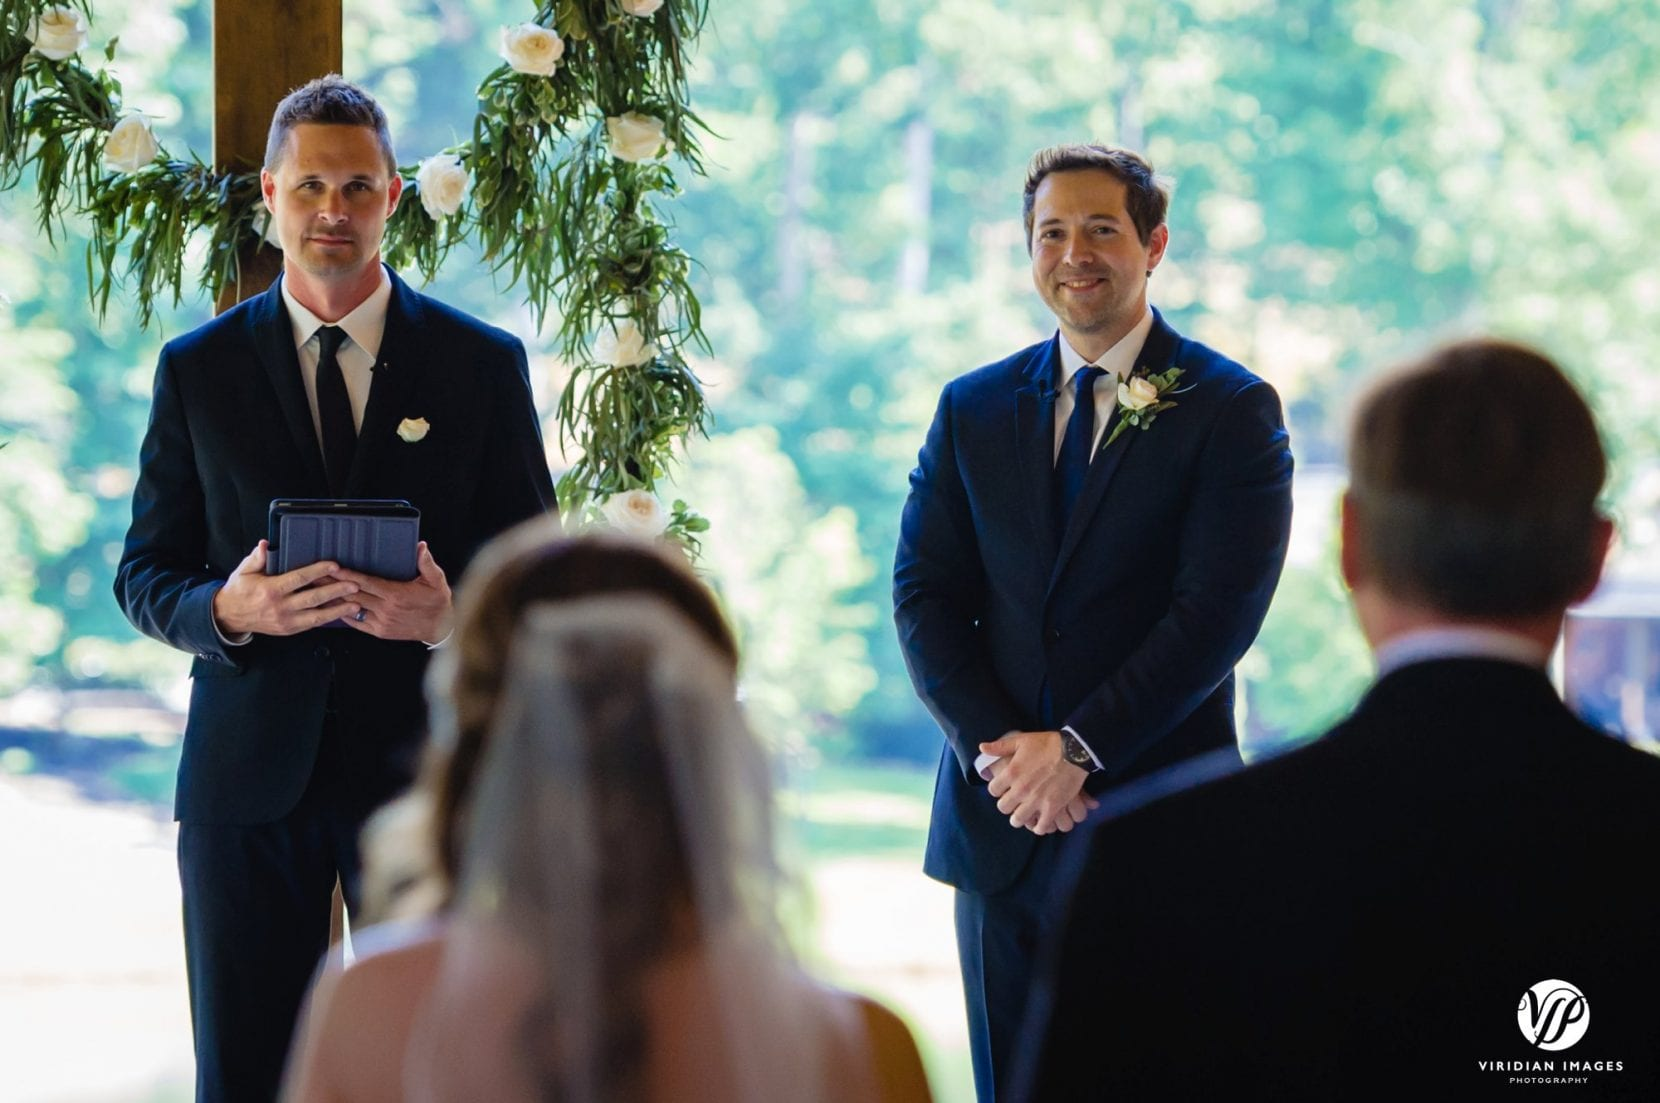 groom sees bride down aisle